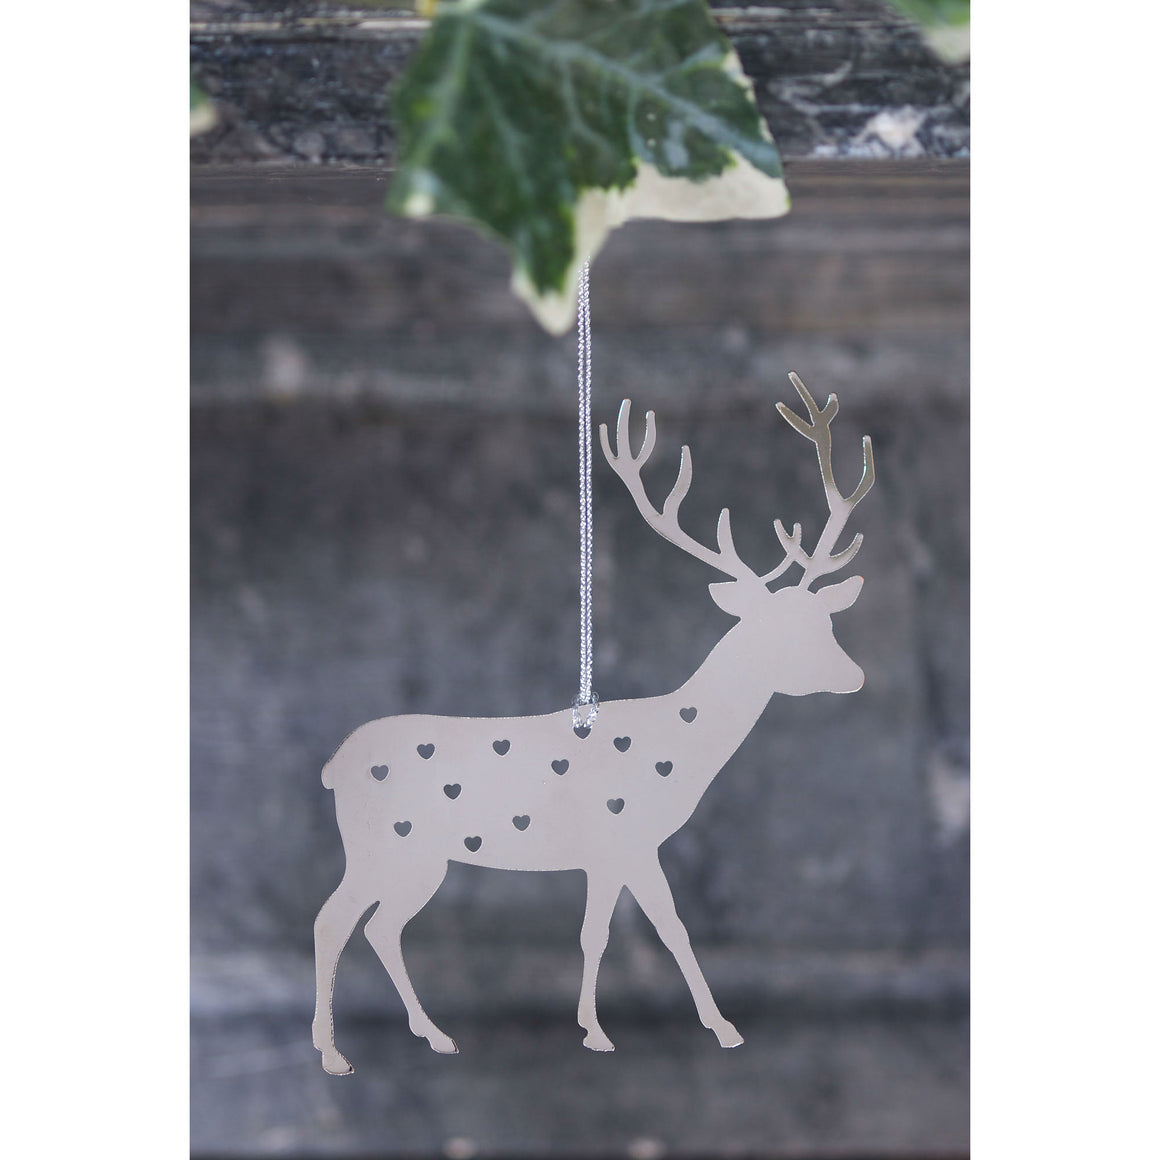 Oh Deer Christmas Decoration - The Love Trees